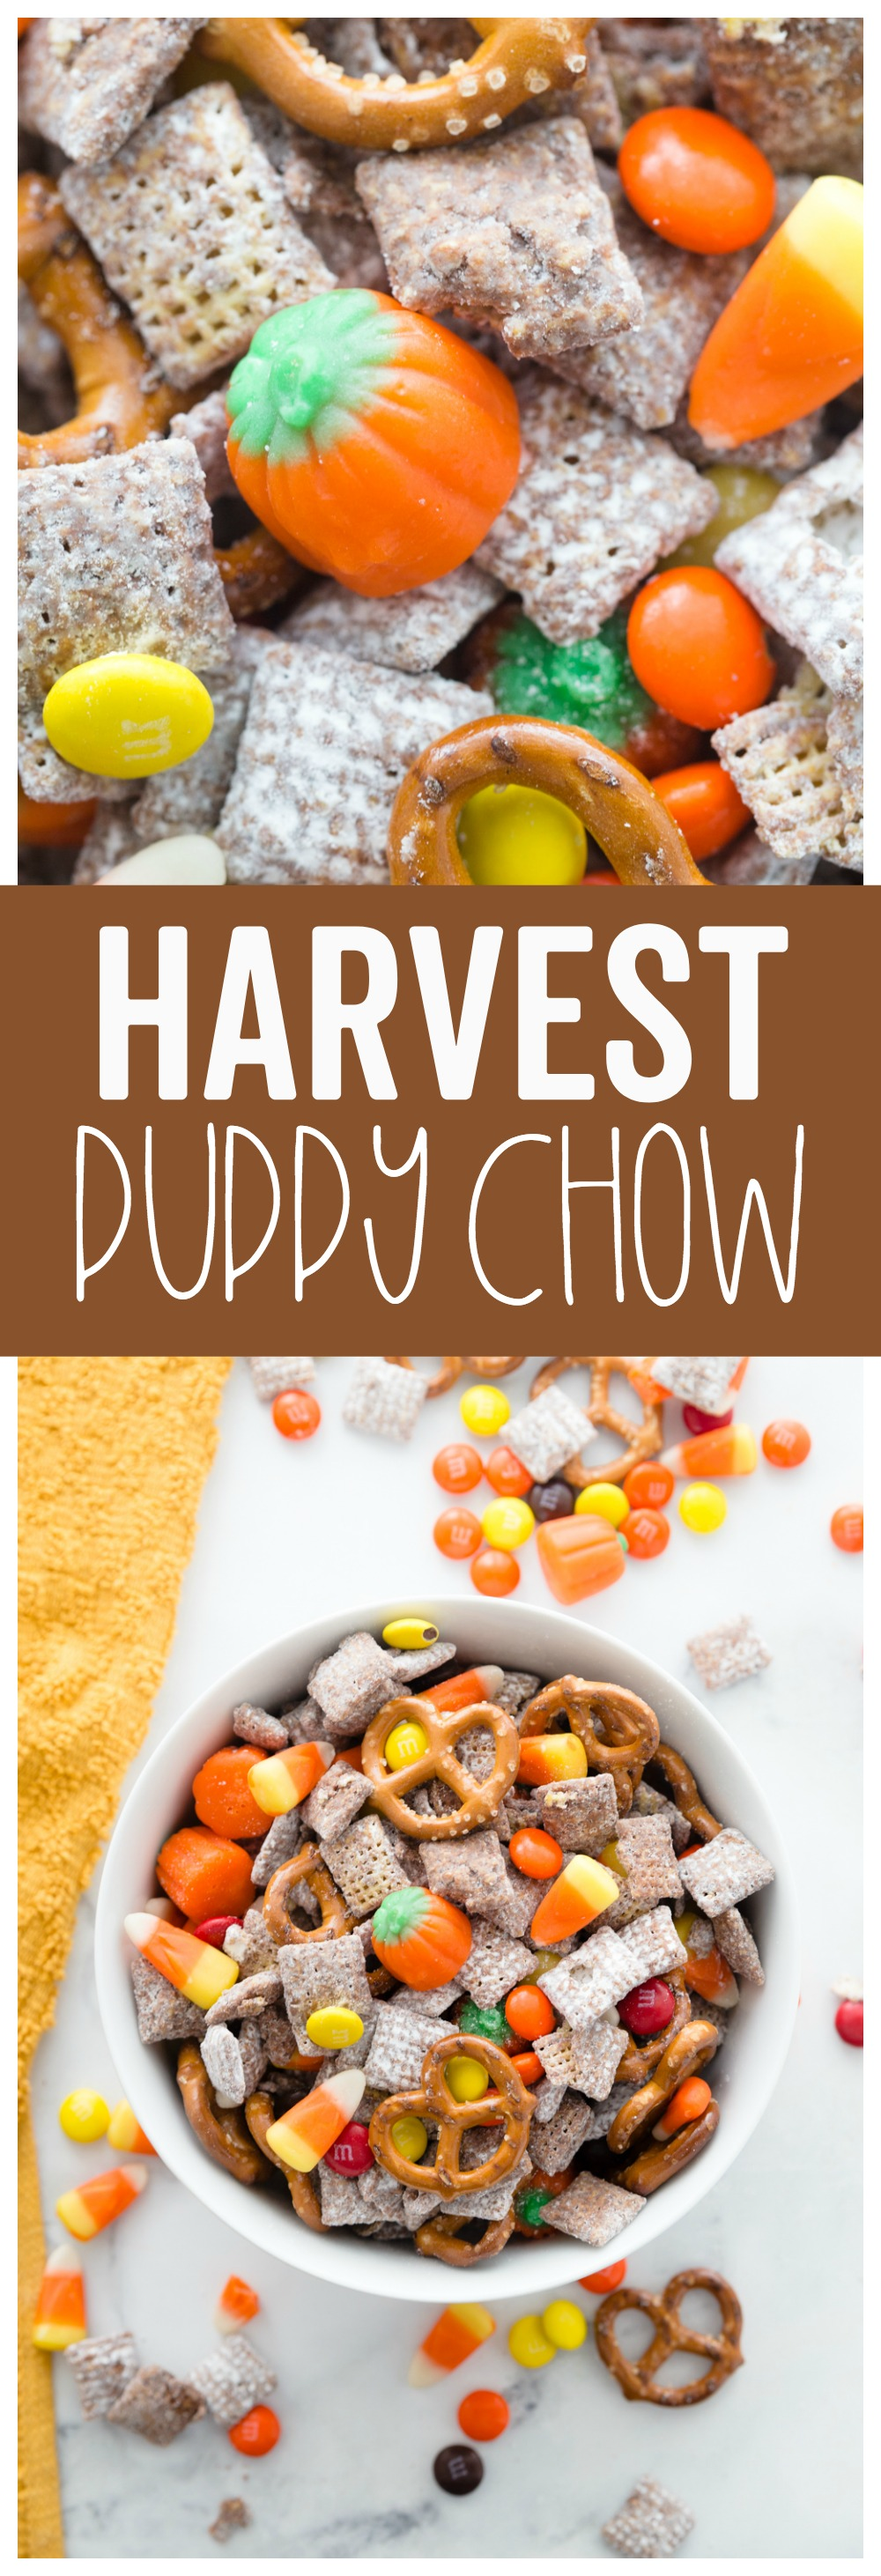 This Harvest Puppy chow is an easy fun fall treat!  It combines the classic flavors of puppy chow with some new ones!